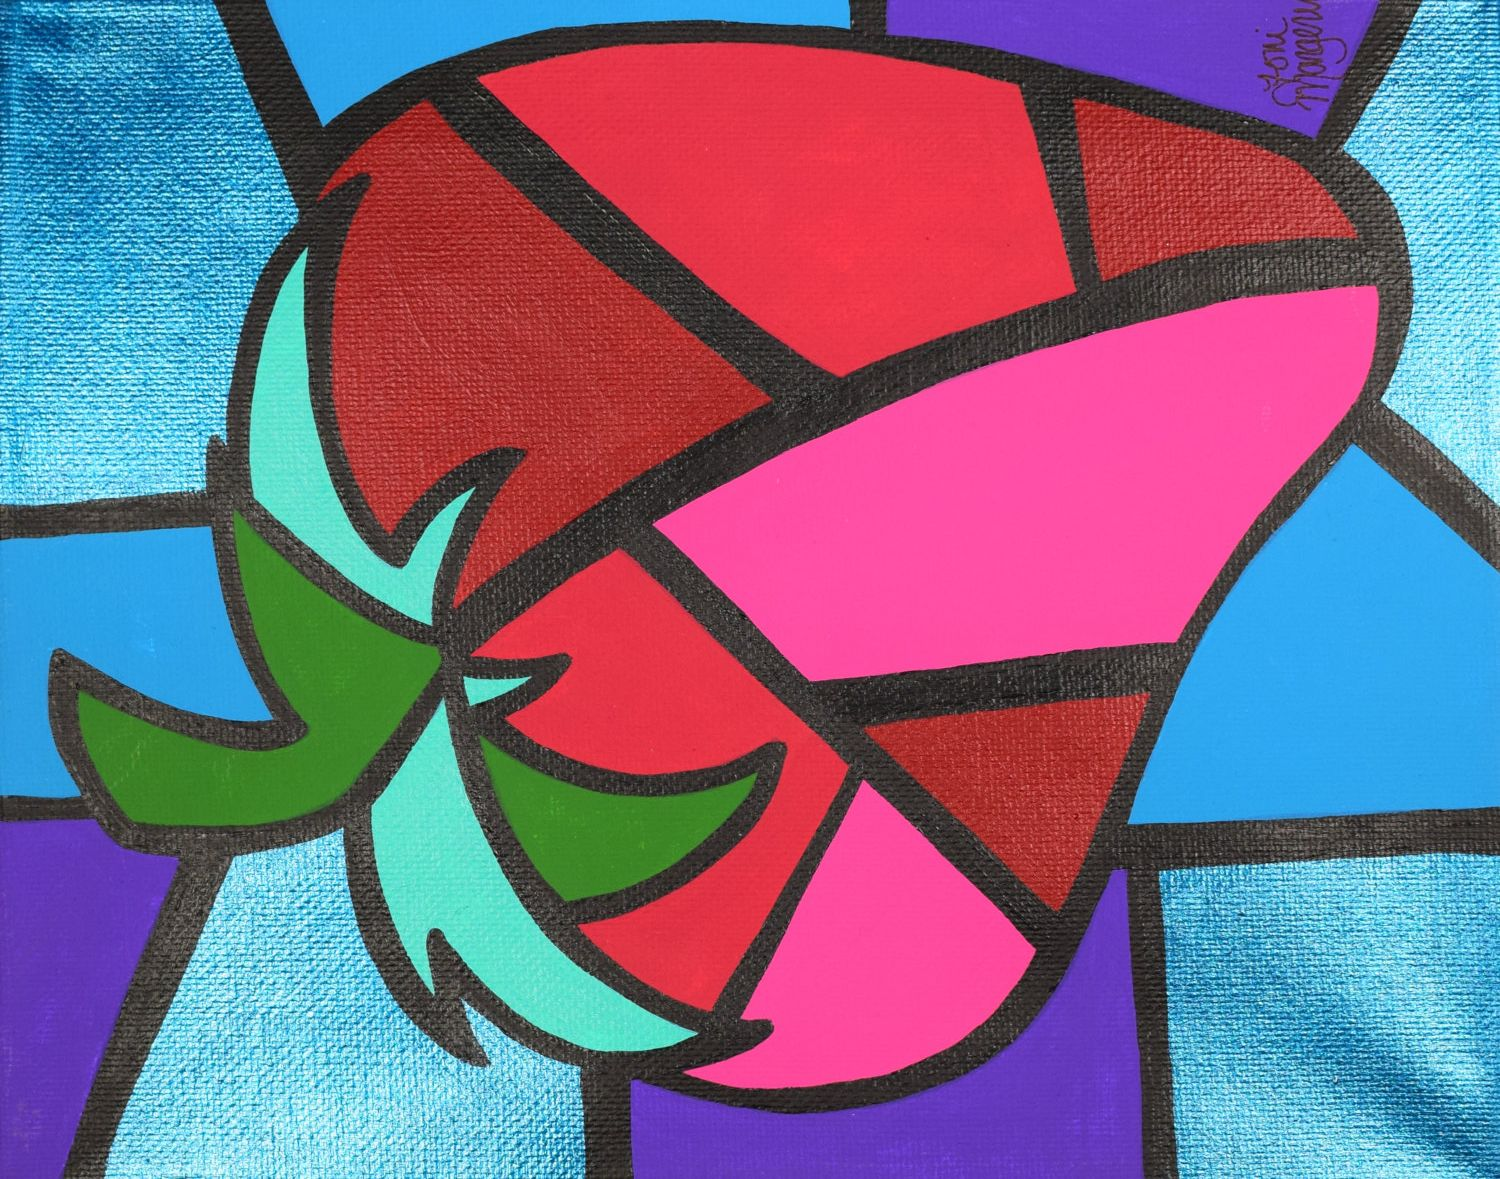 Picasso Strawberry Cubism Paintings